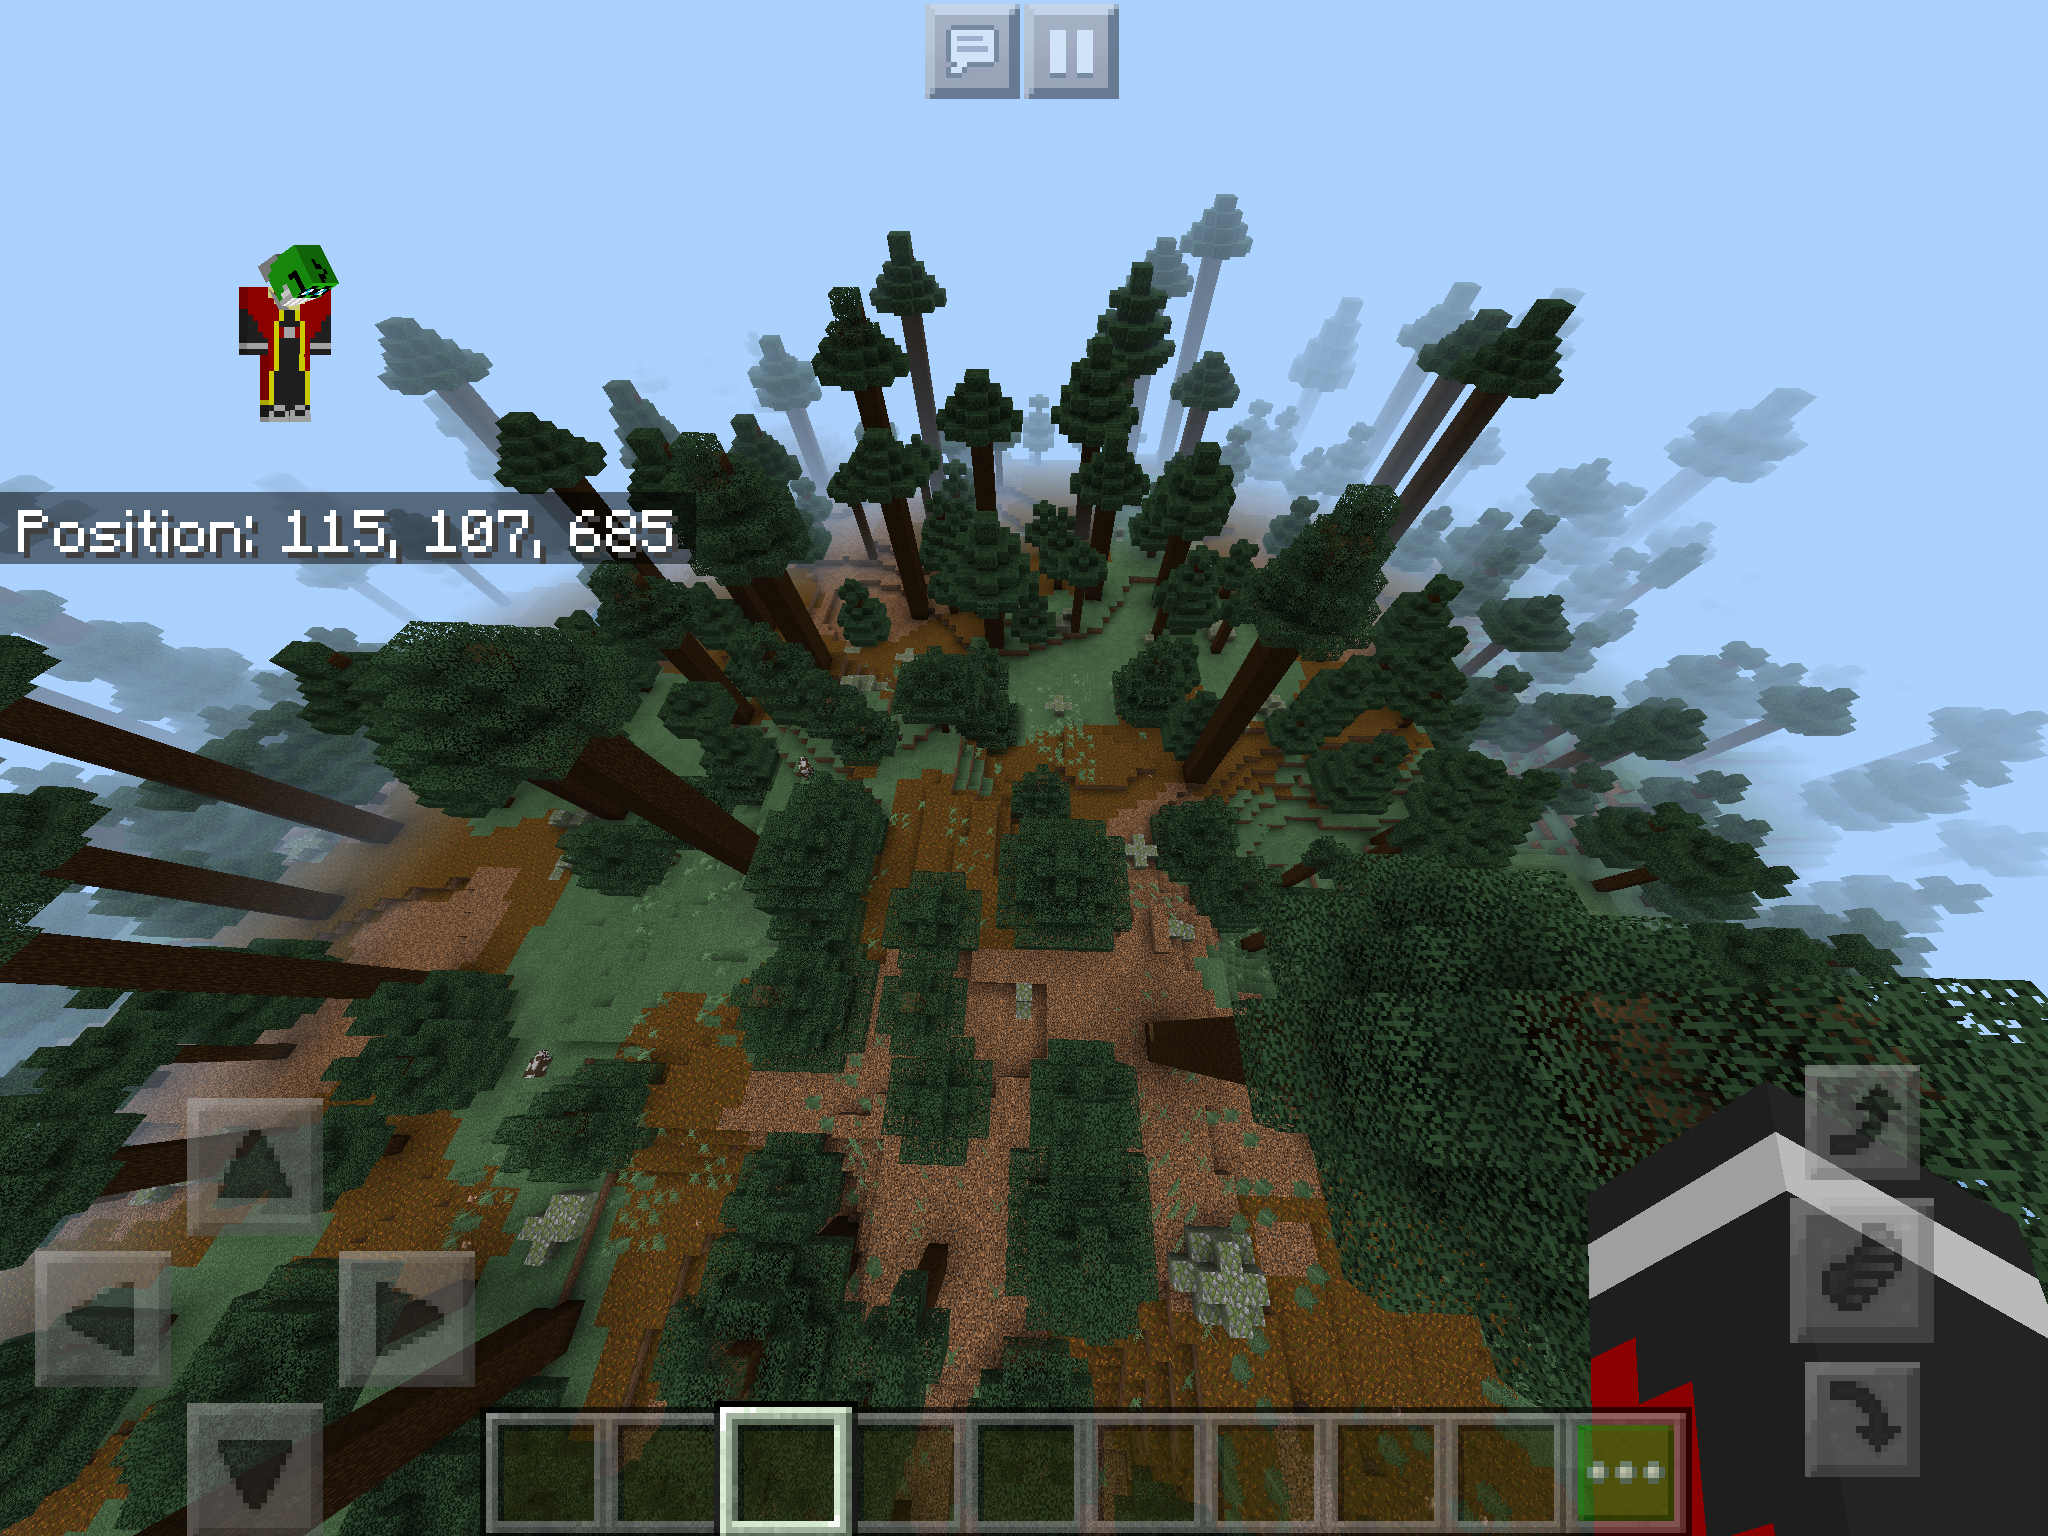 MCPE-49949] Trees in Giant spruce taiga hills generate normal